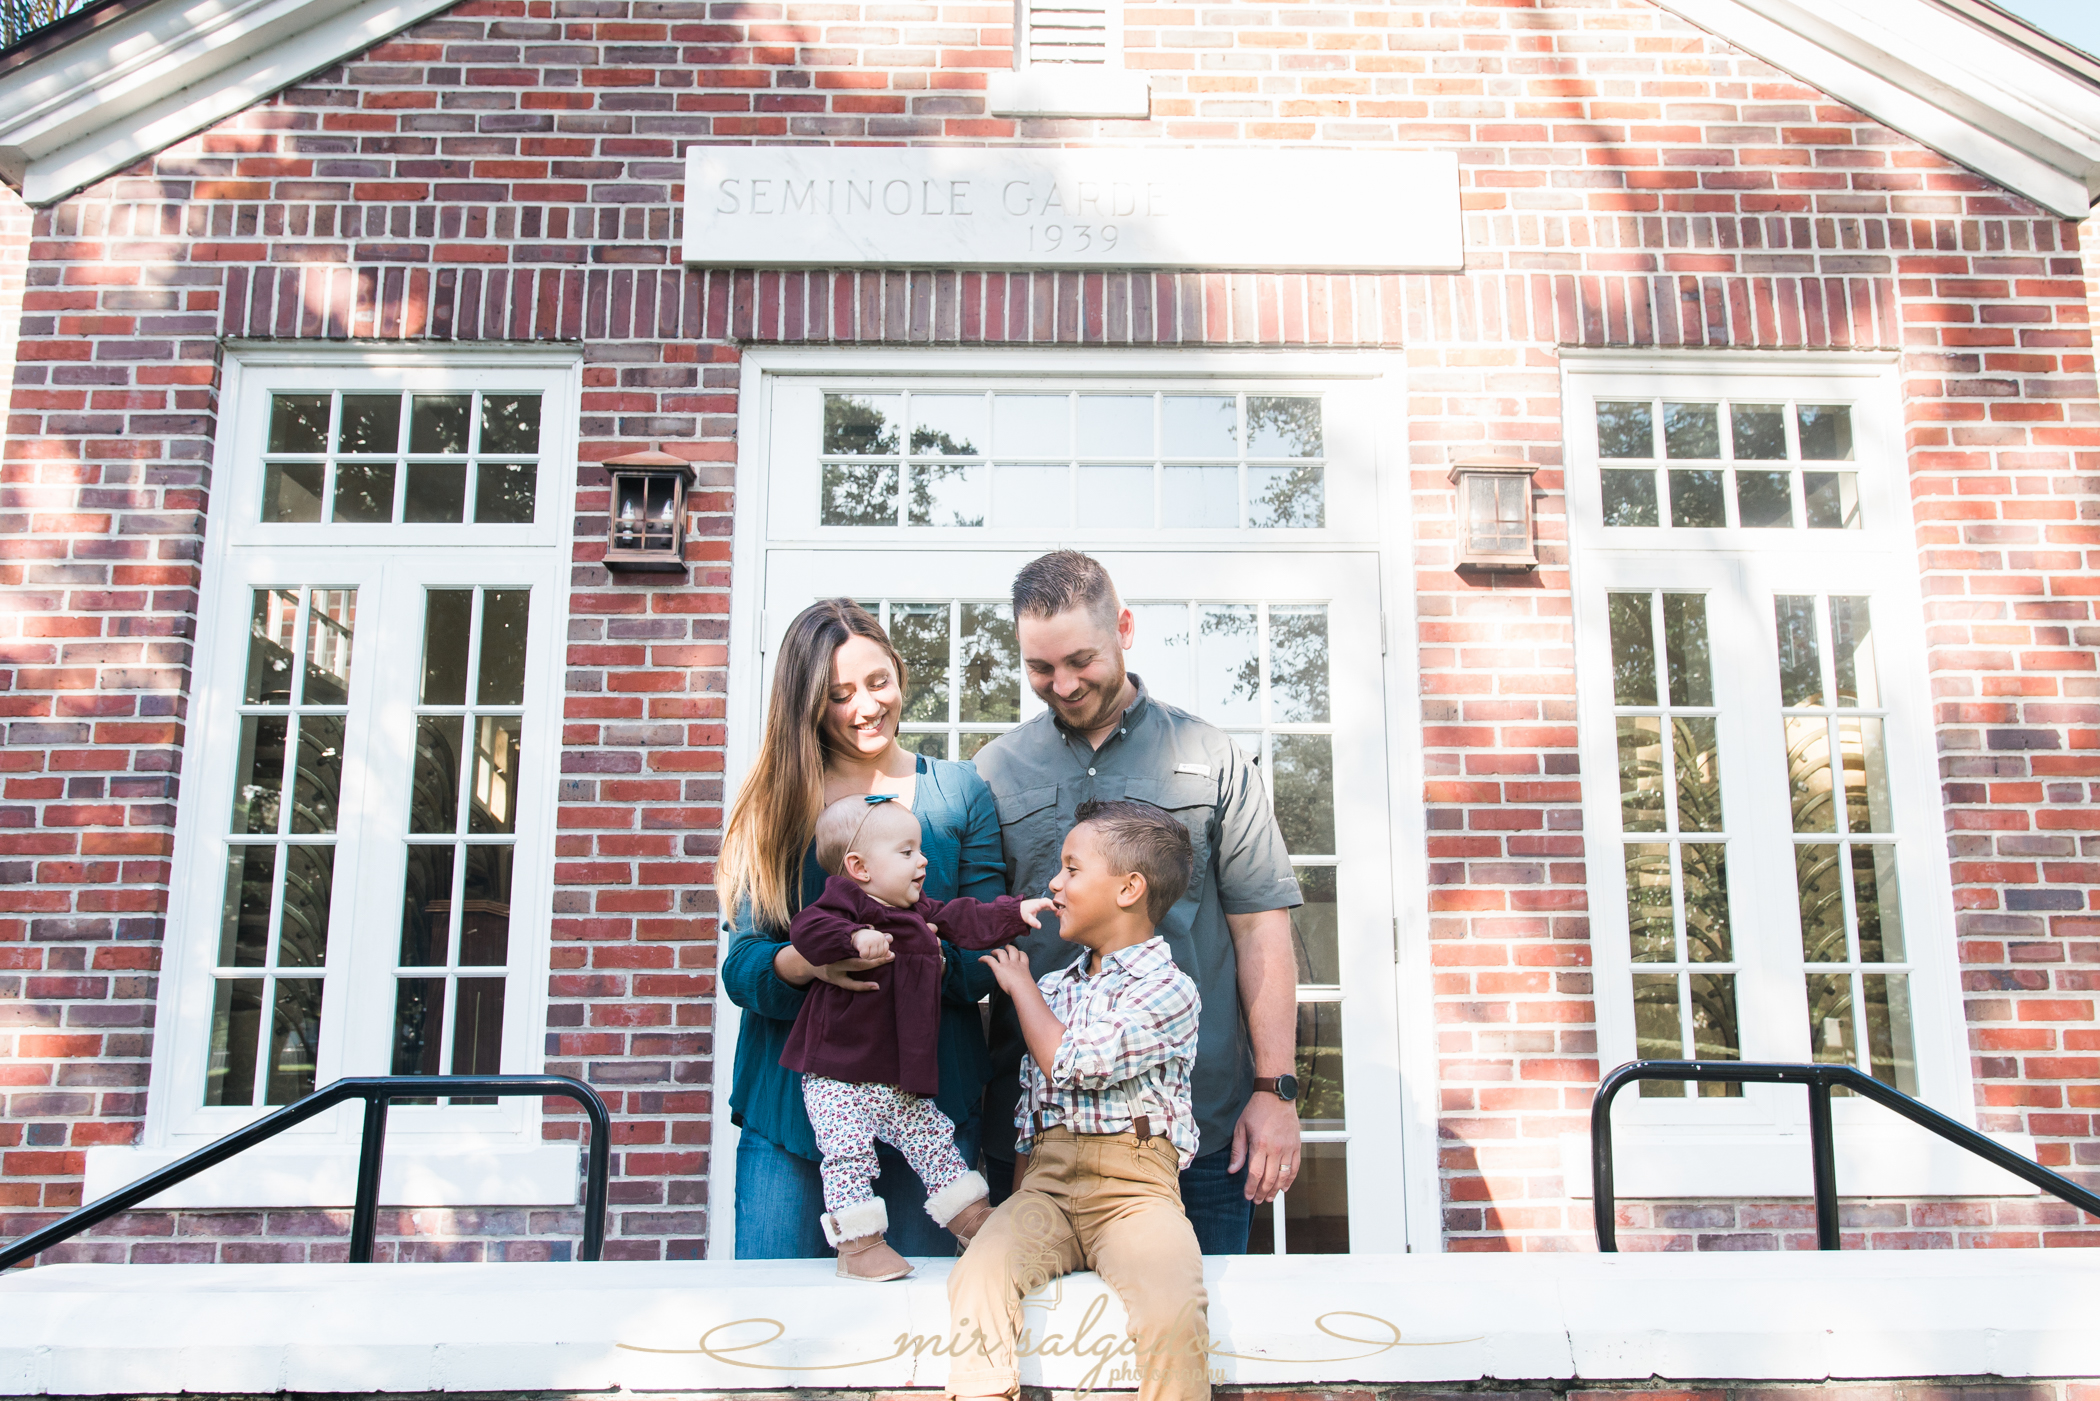 Seminole-heights-family-session, Tampa-family-session